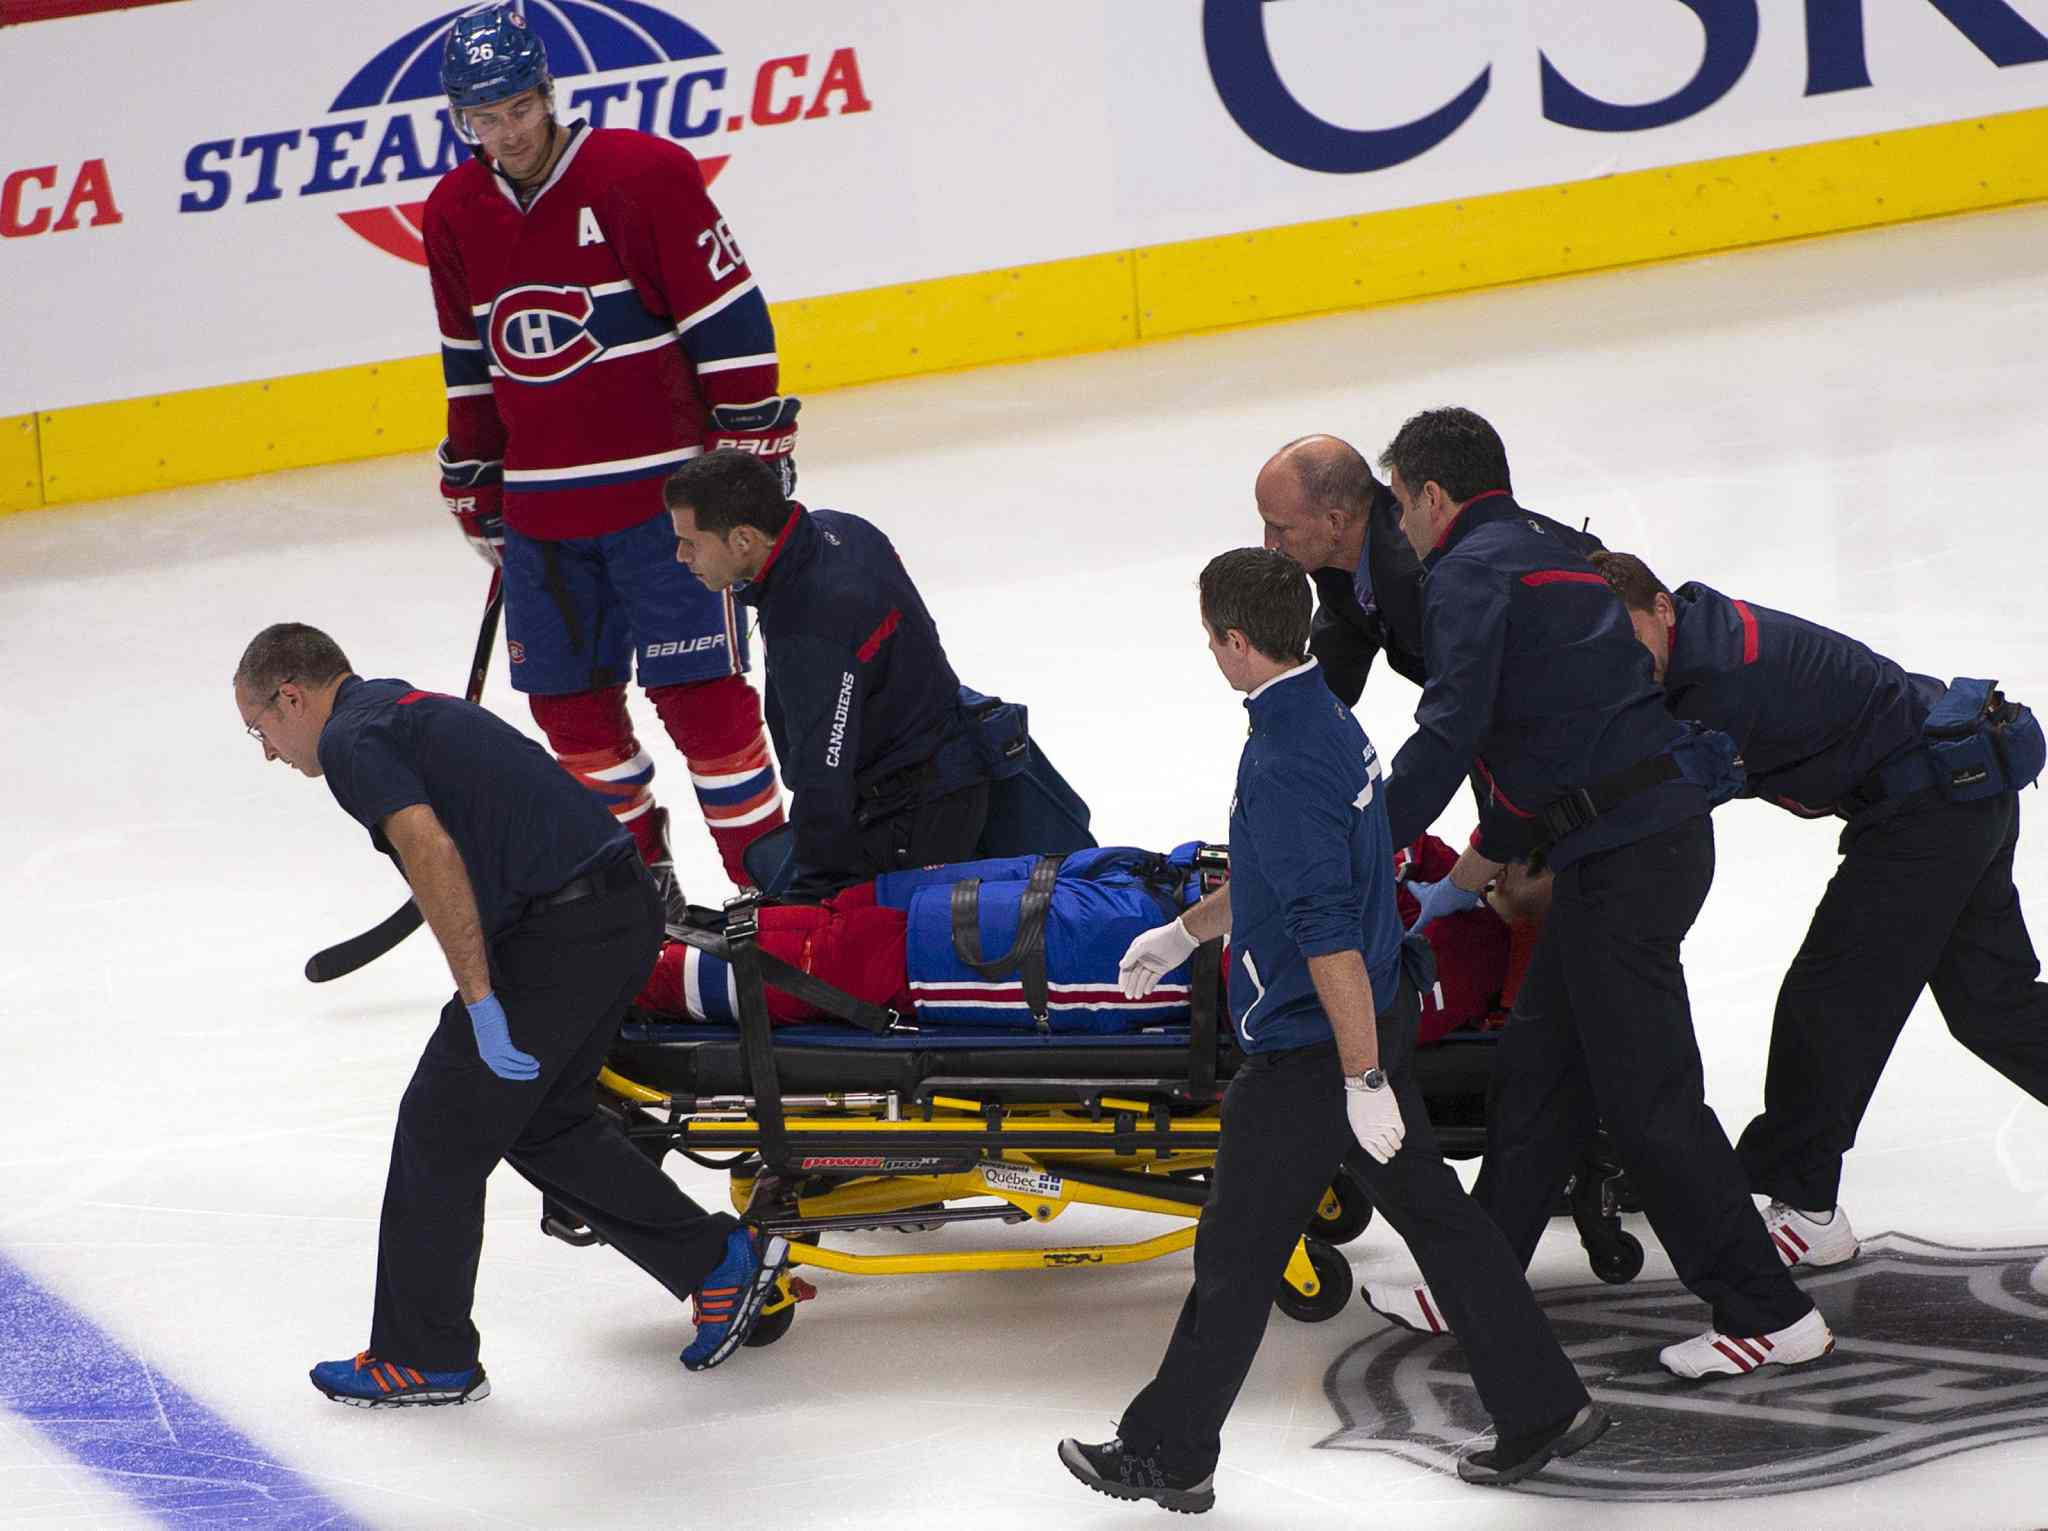 The Montreal Canadiens' George Parros is stretchered off the ice in Montreal after Parros hit his head on the ice during a fight with Toronto Maple Leaf Colton Orr.